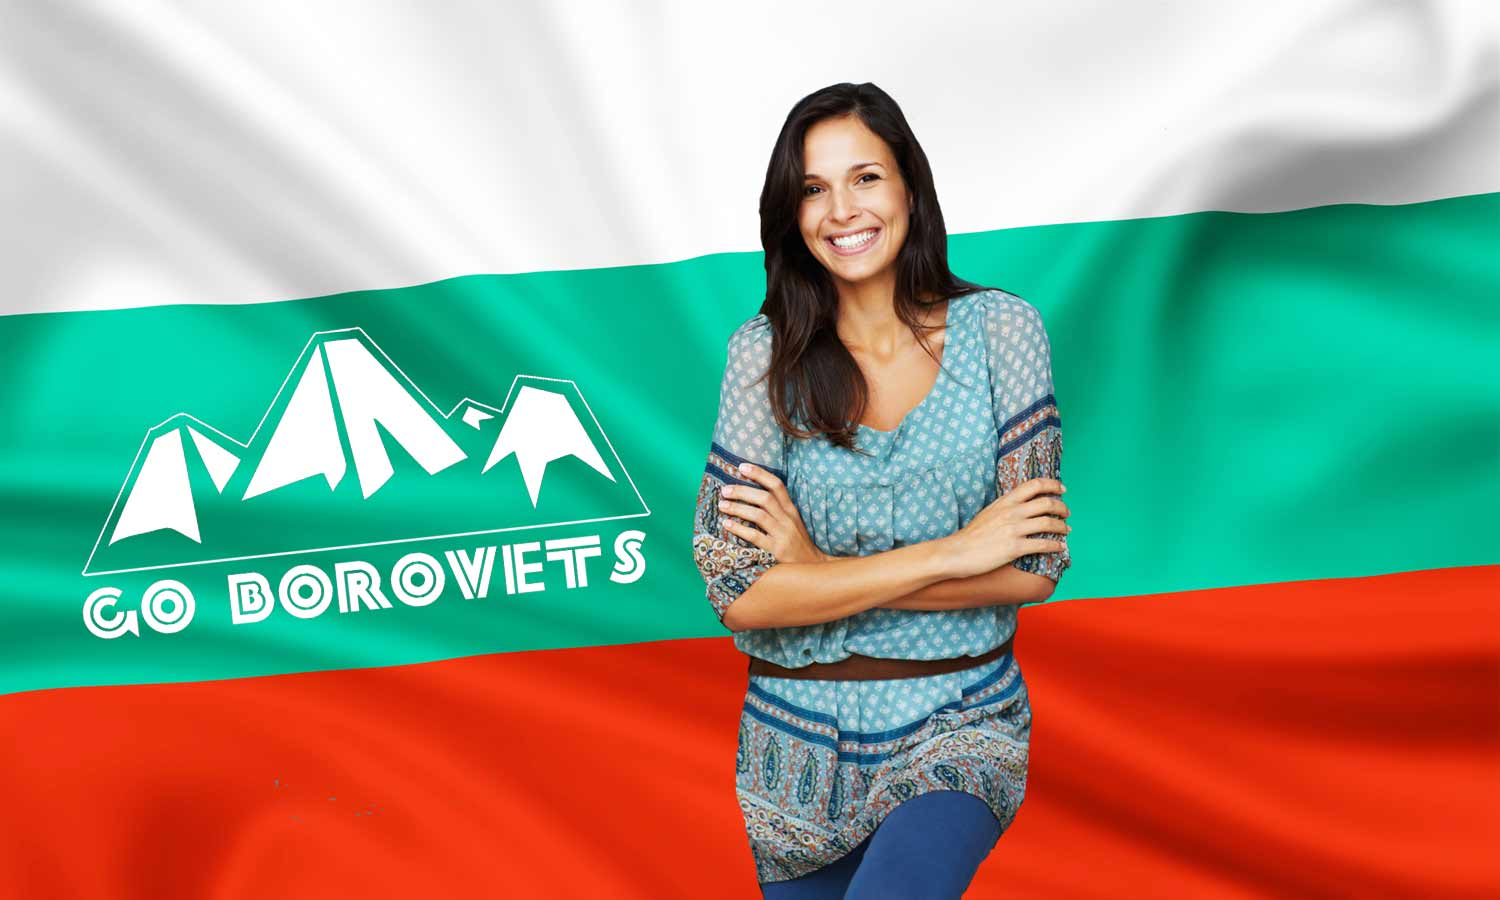 Go Borovets the team